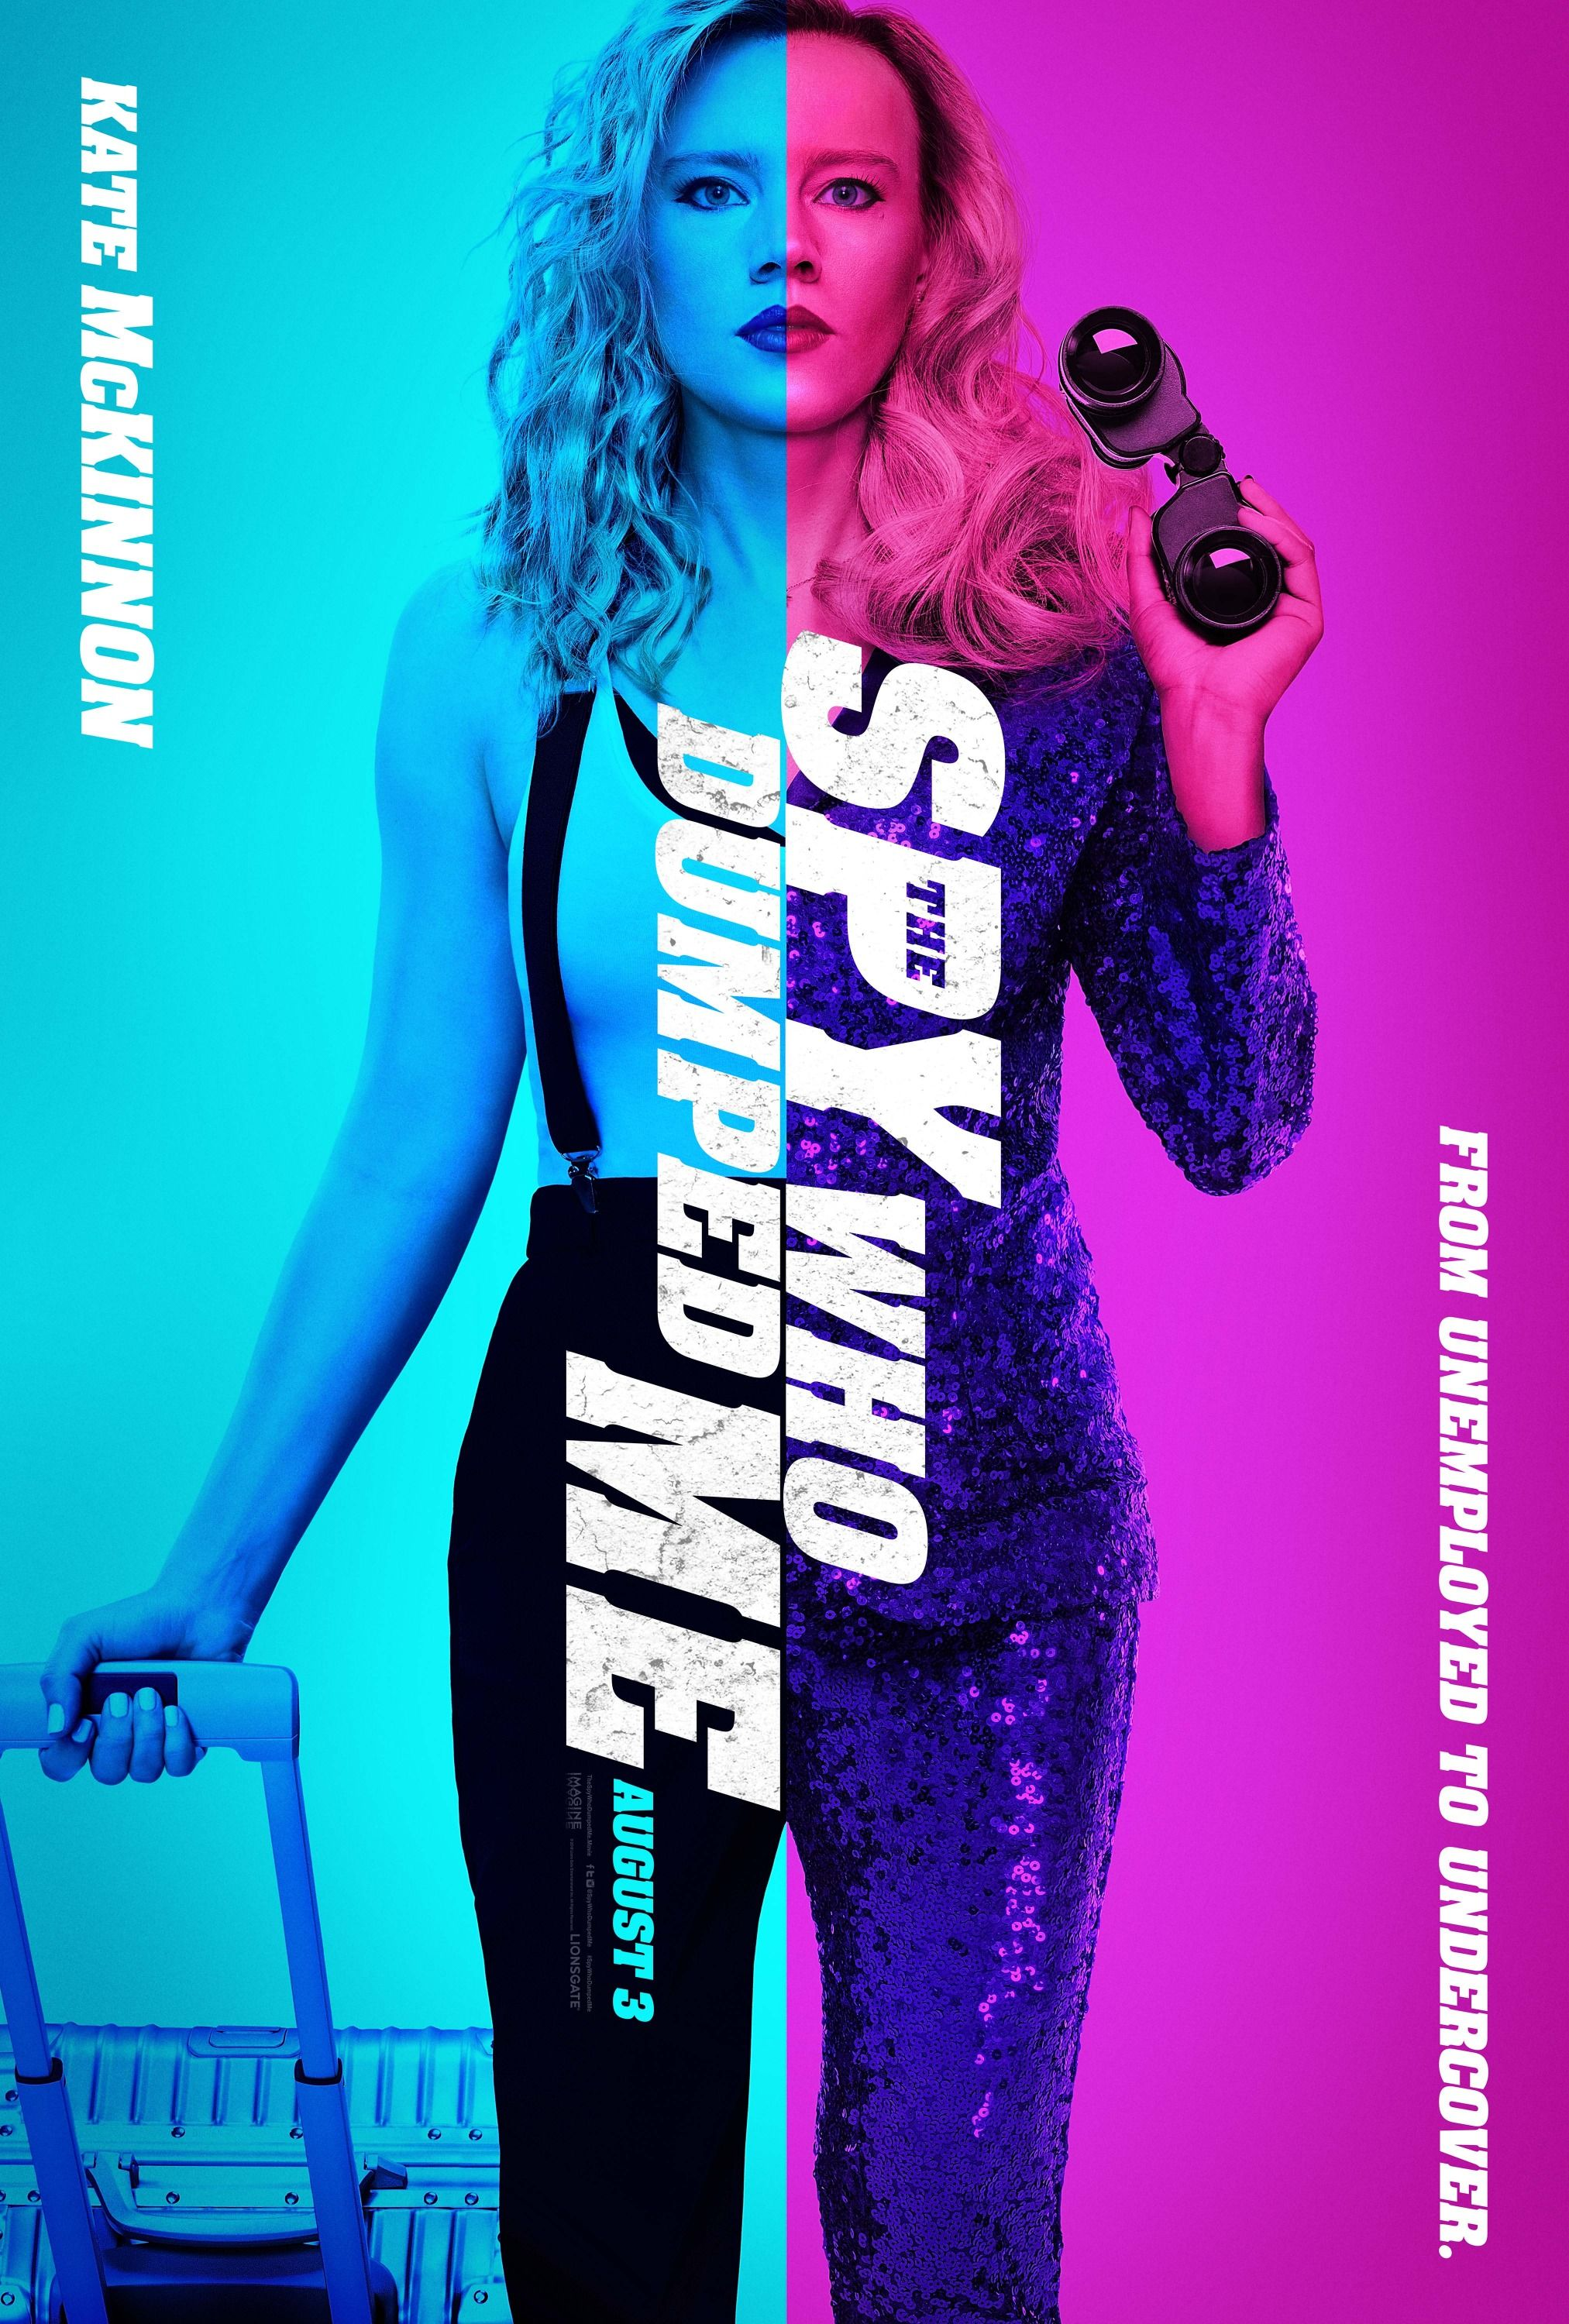 The Spy Who Dumped Me Full Movies Online Free Kate Mckinnon